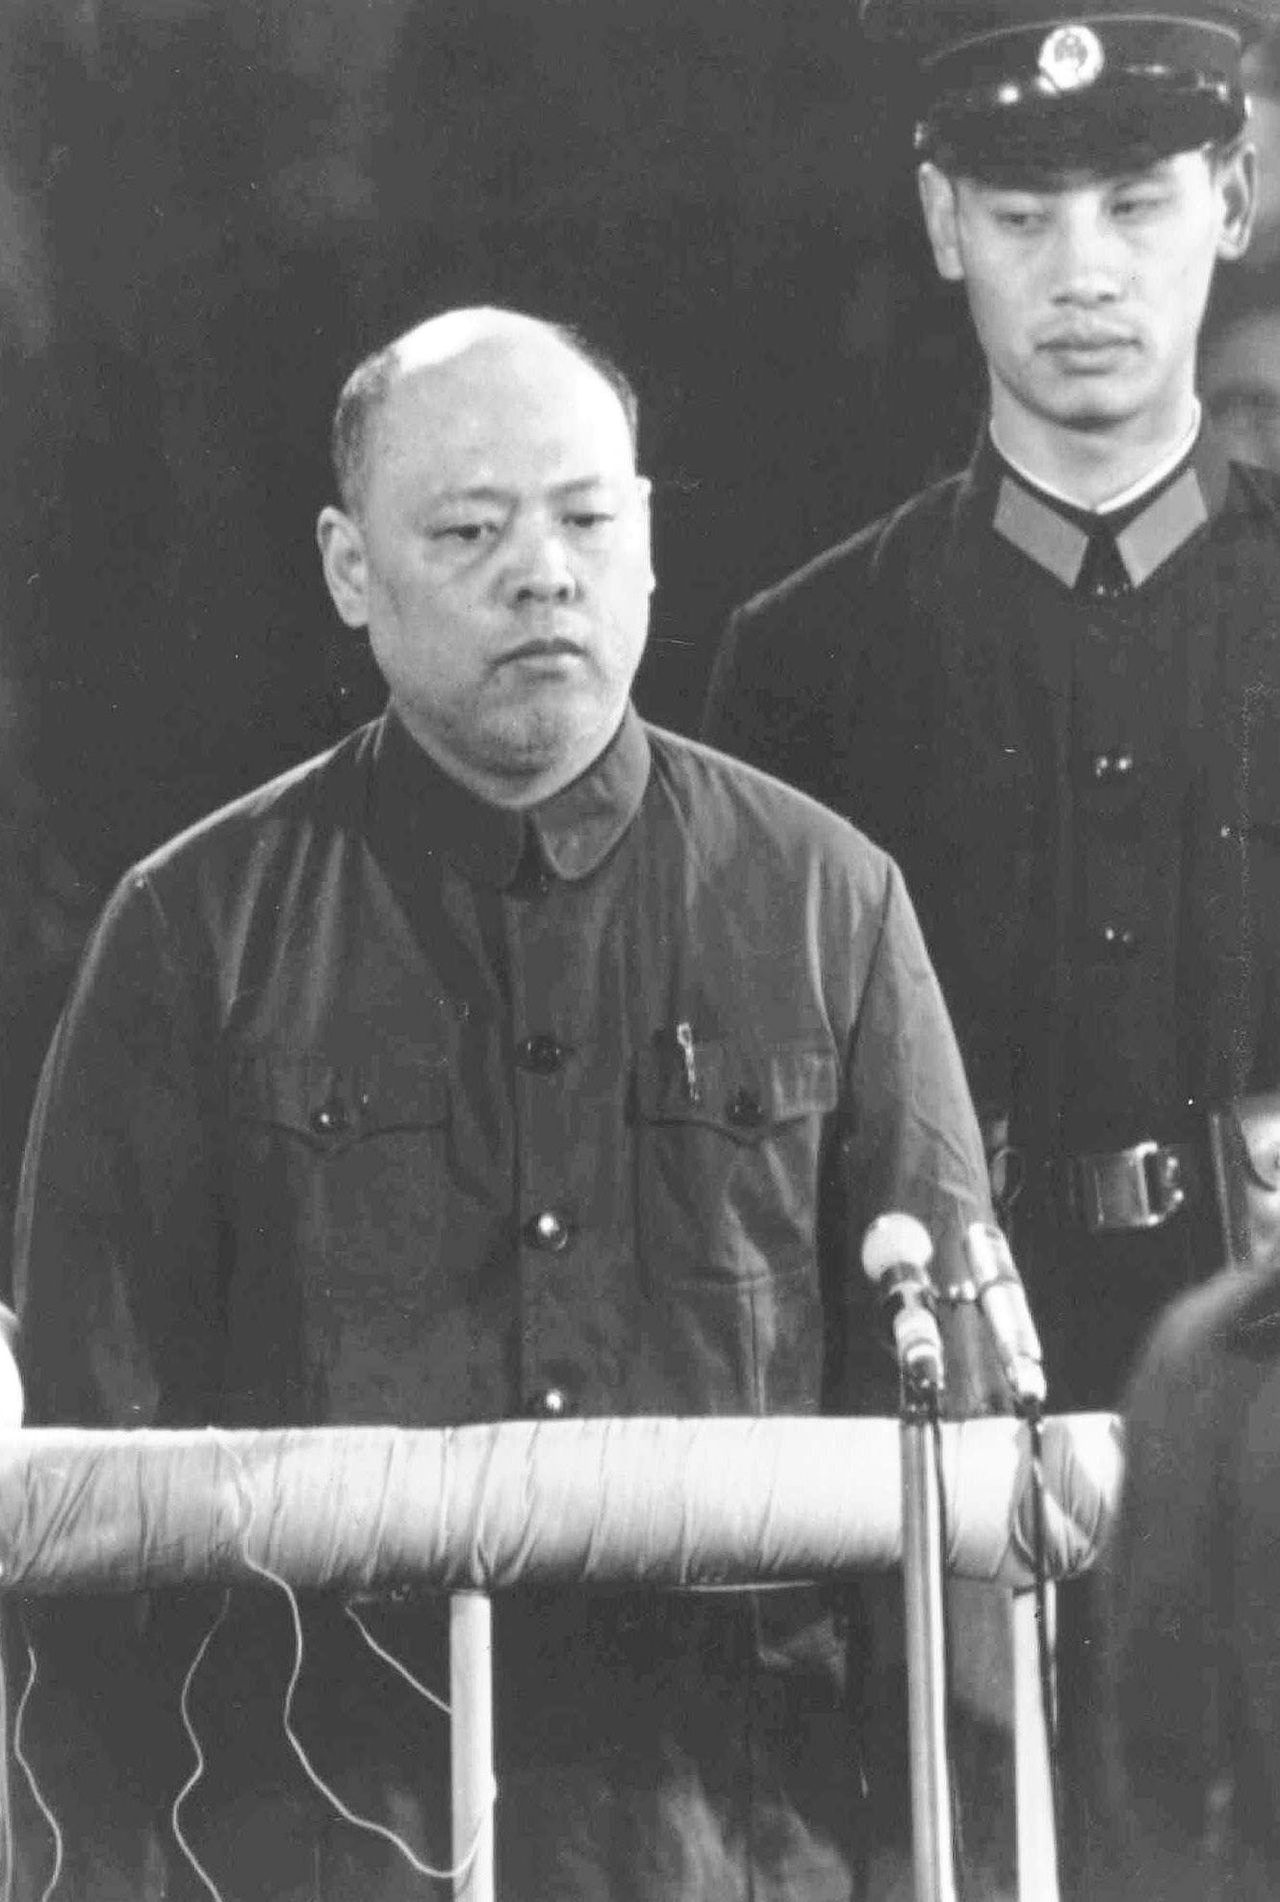 """** FILE ** Yao Wenyuan is shown in this Nov. 20, 1980 file photo standing at the dock during trials for the """"Gang of Four"""" in Beijing. Yao, known as China's killer with a pen for his role as the propaganda chief in the group which led the excesses of the 1966-1976 """"Cultural Revolution"""", died of diabetes on Dec. 23, 2005, the official Xinhua News Agency reported in Beijing, China Friday Jan. 6, 2006. (AP Photo/Xinhua FILE)"""